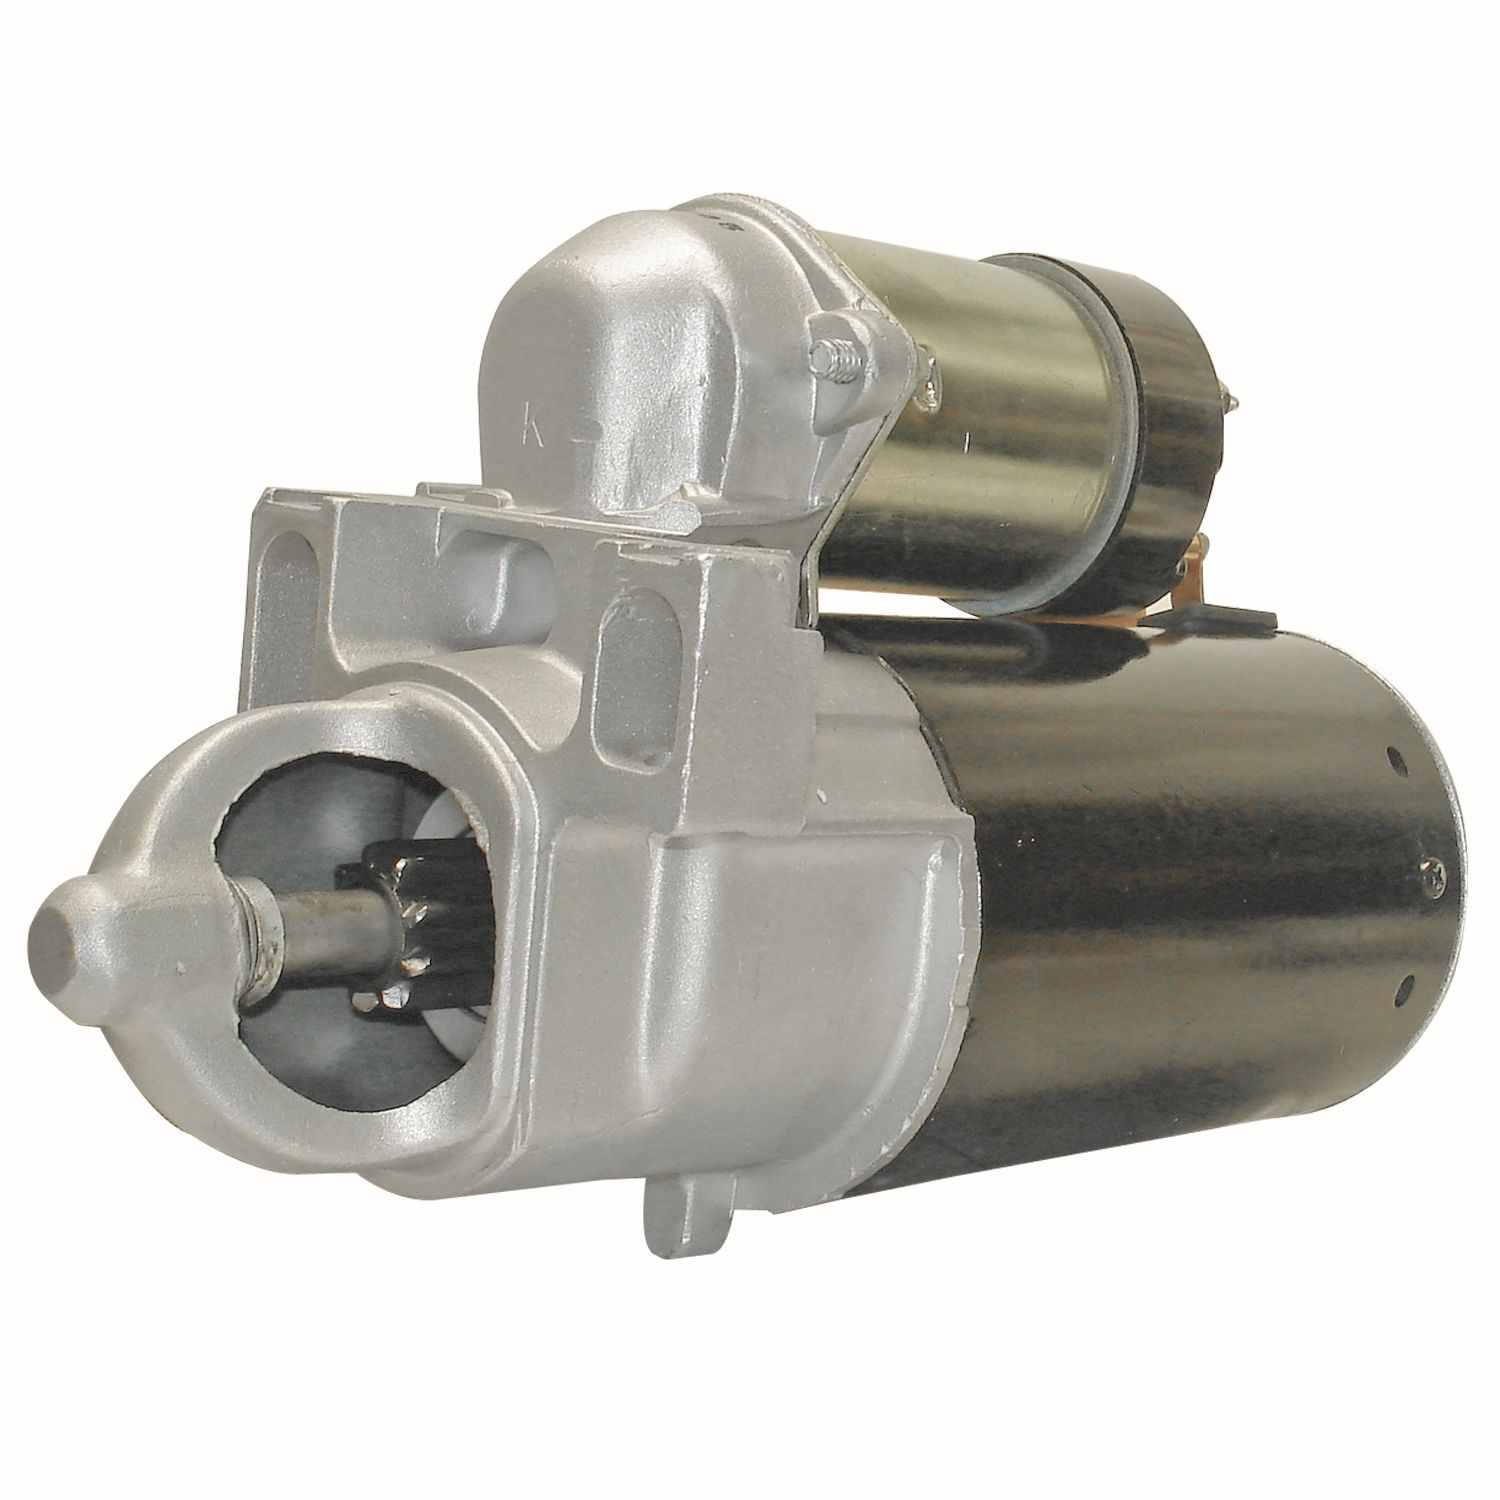 ACDELCO GOLD/PROFESSIONAL - Reman Starter Motor - DCC 336-1818